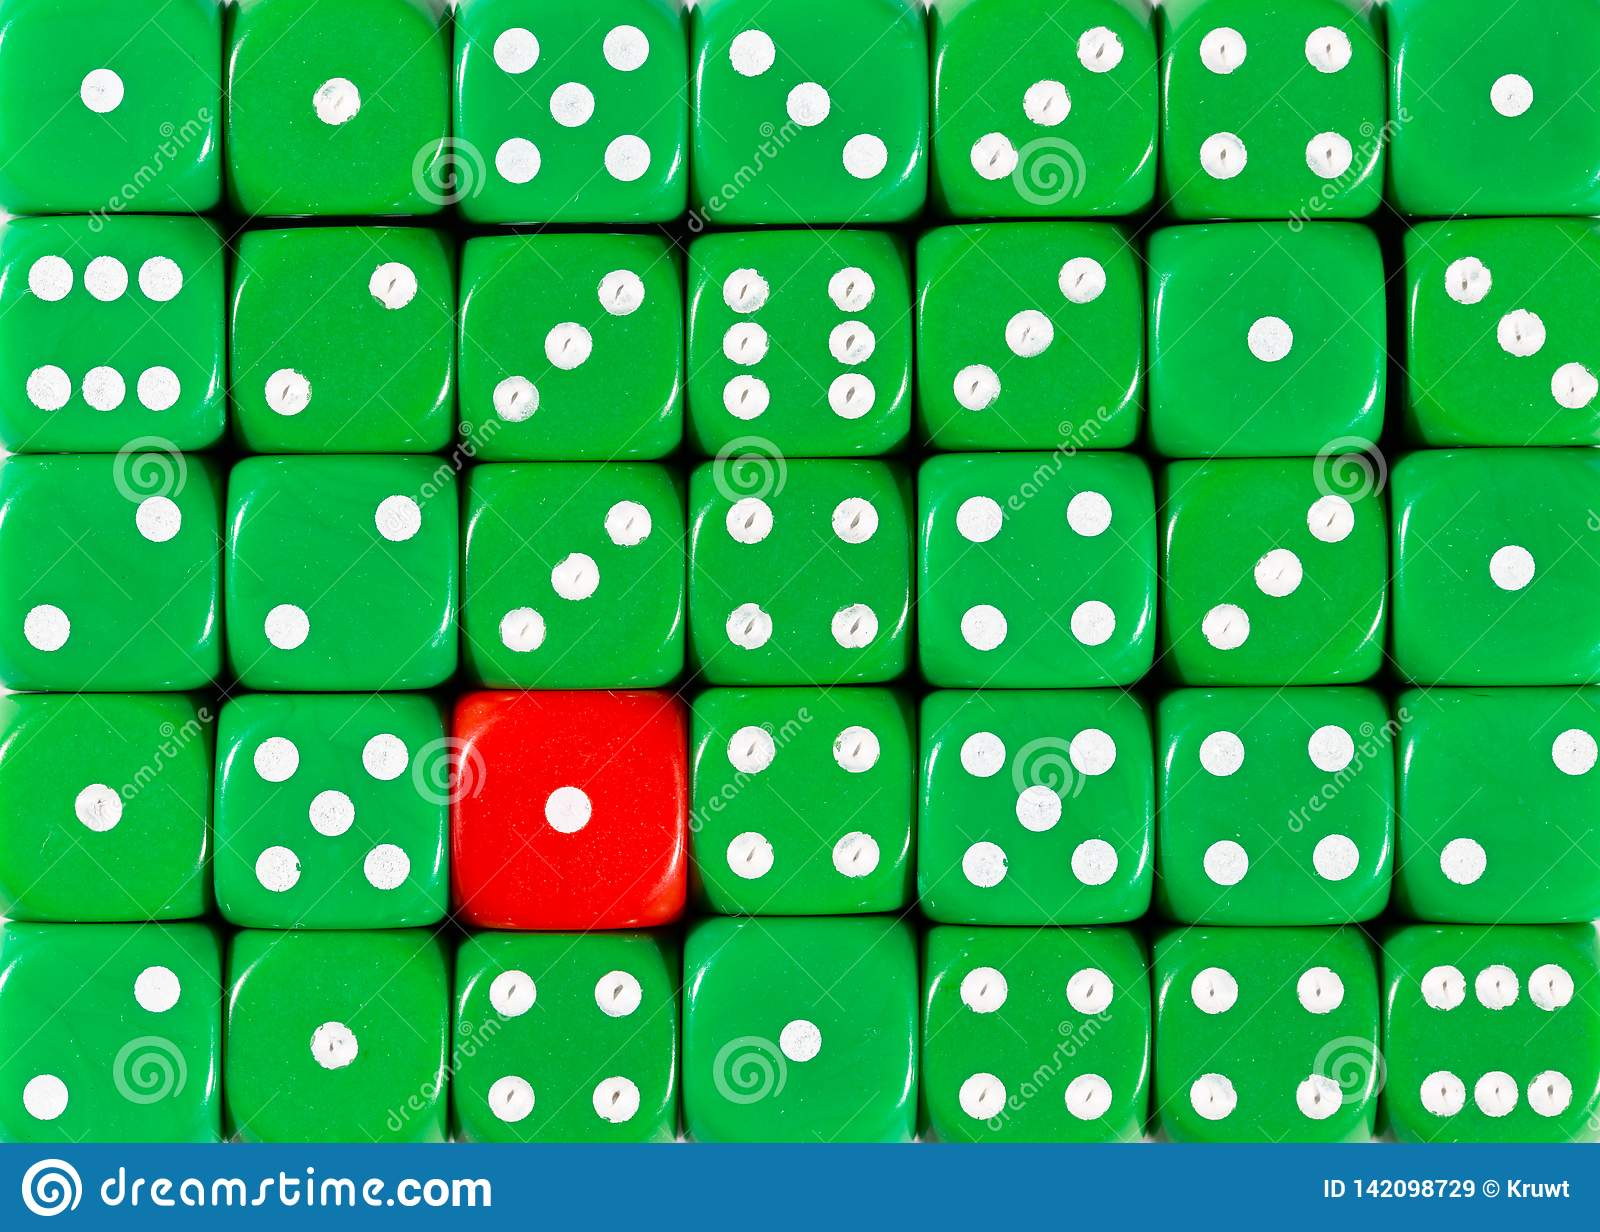 Background of random ordered green dices with one red cube